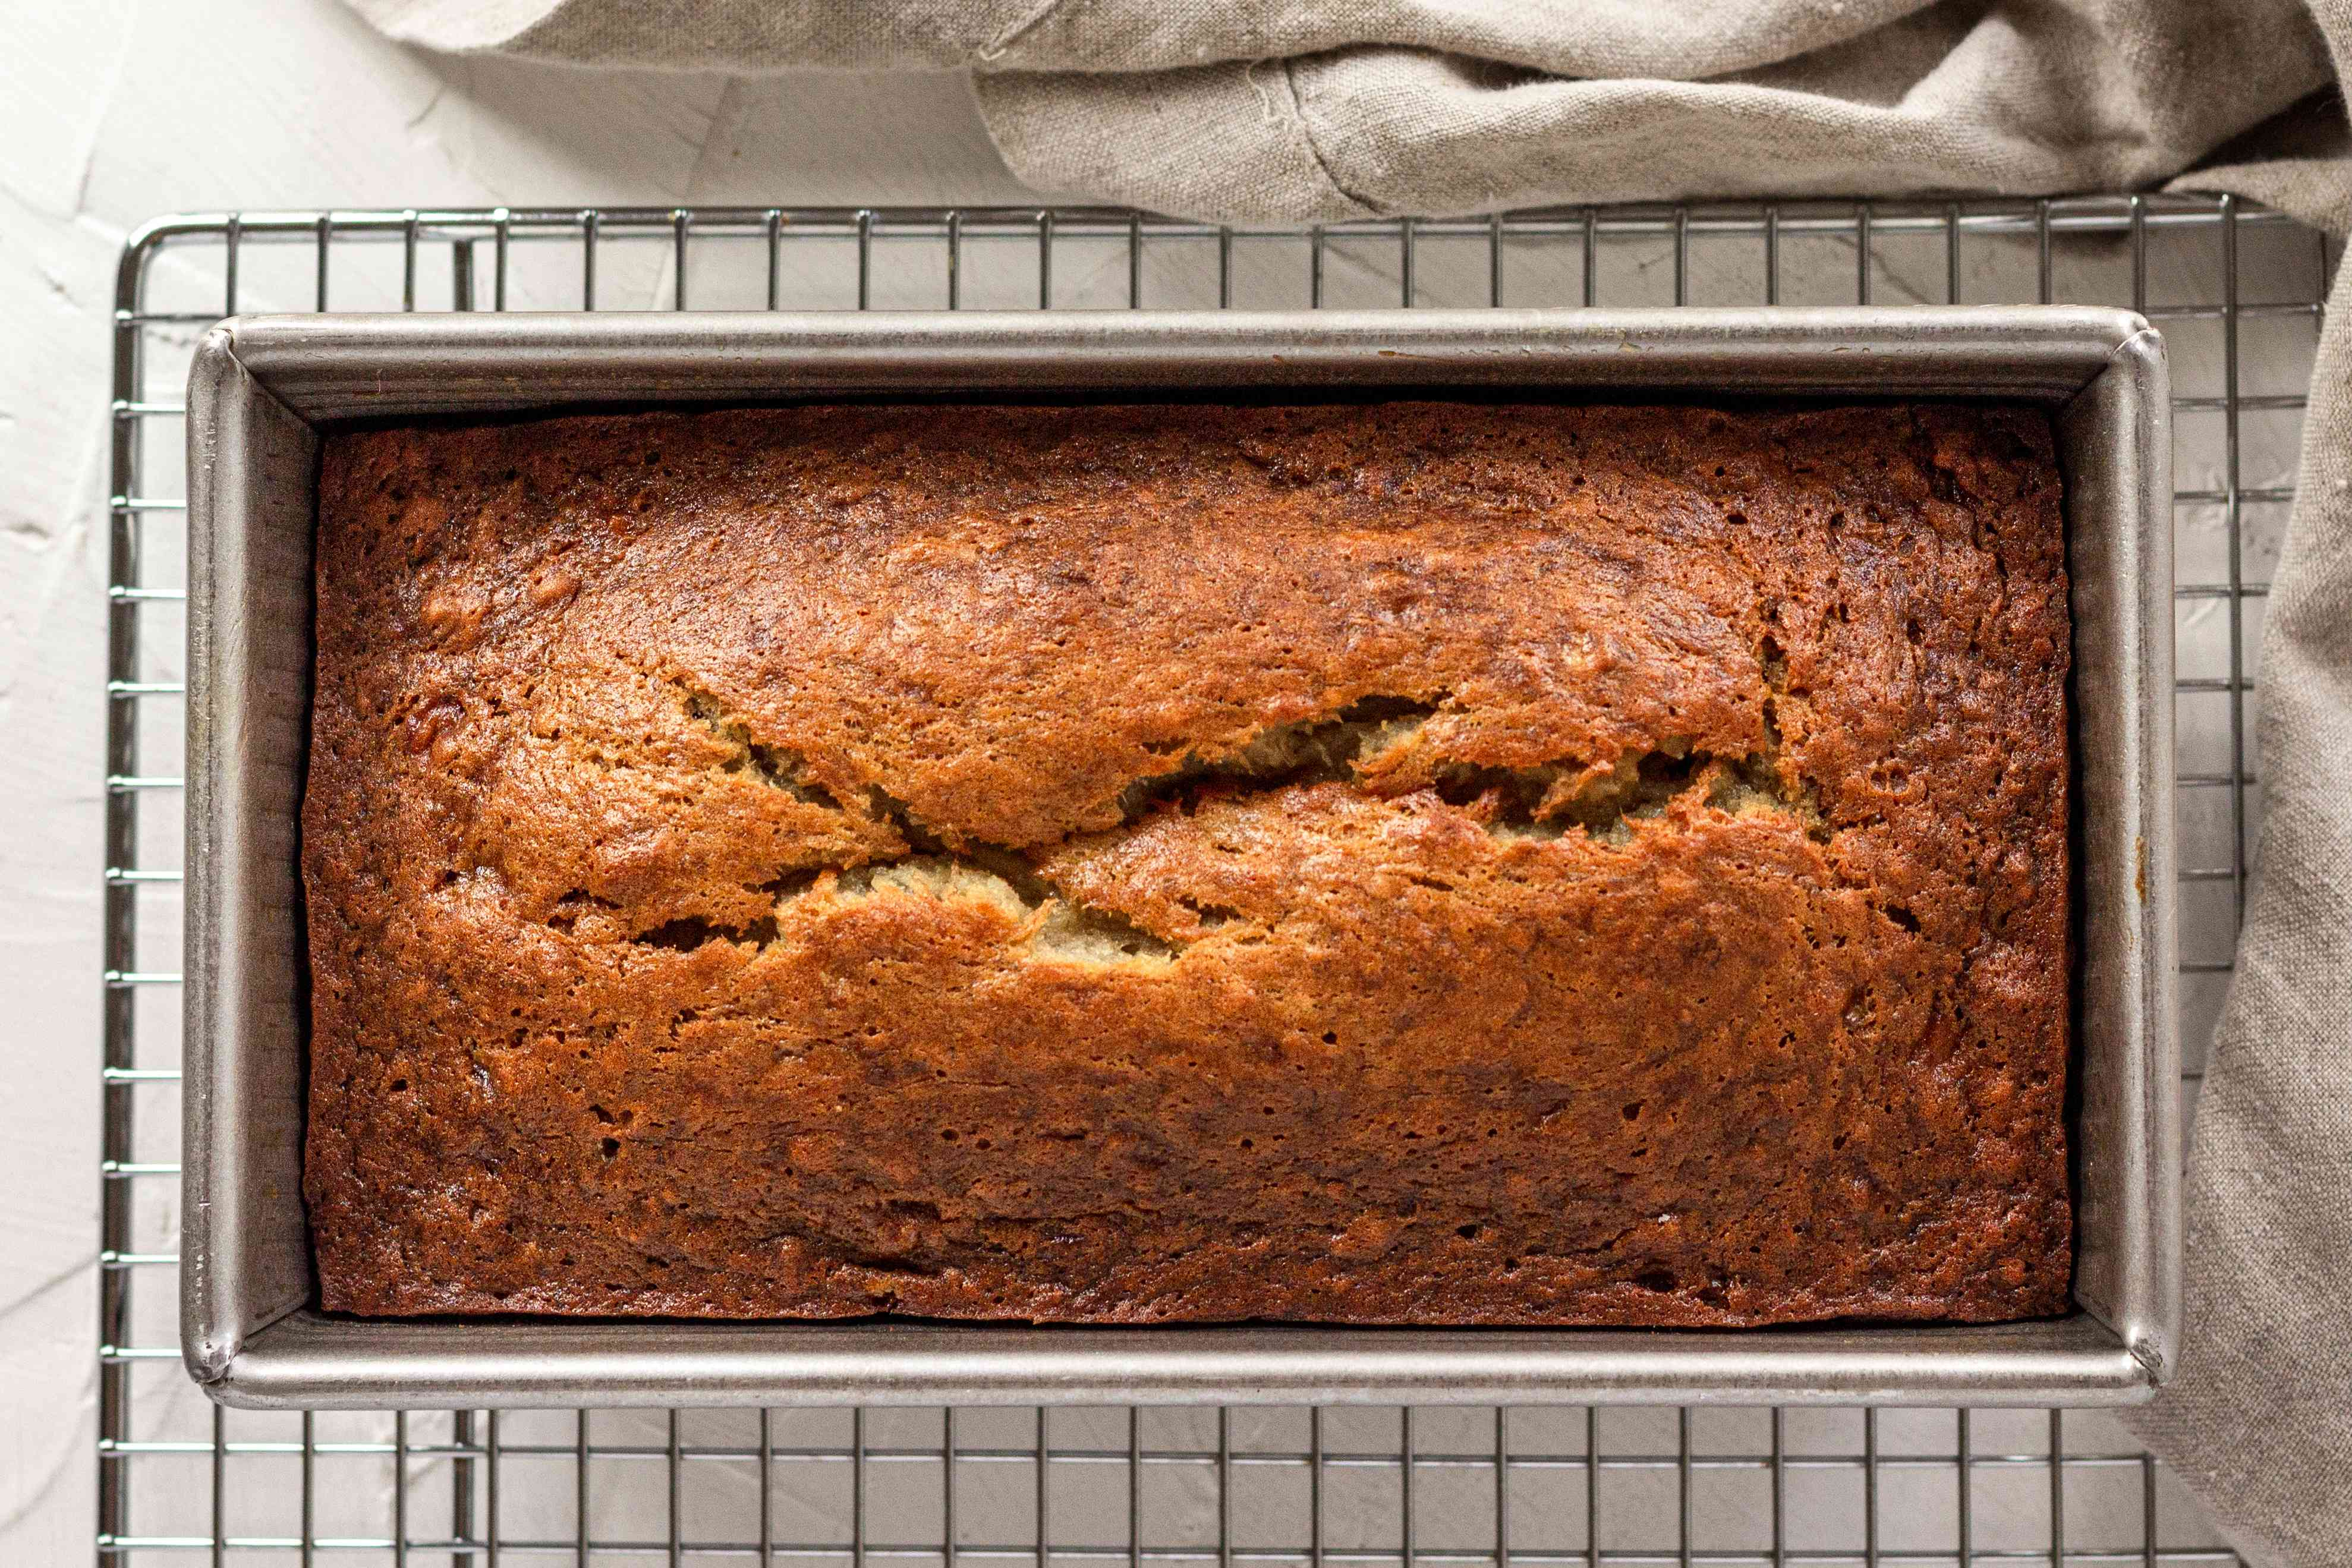 Baked banana bread in a loaf pan.